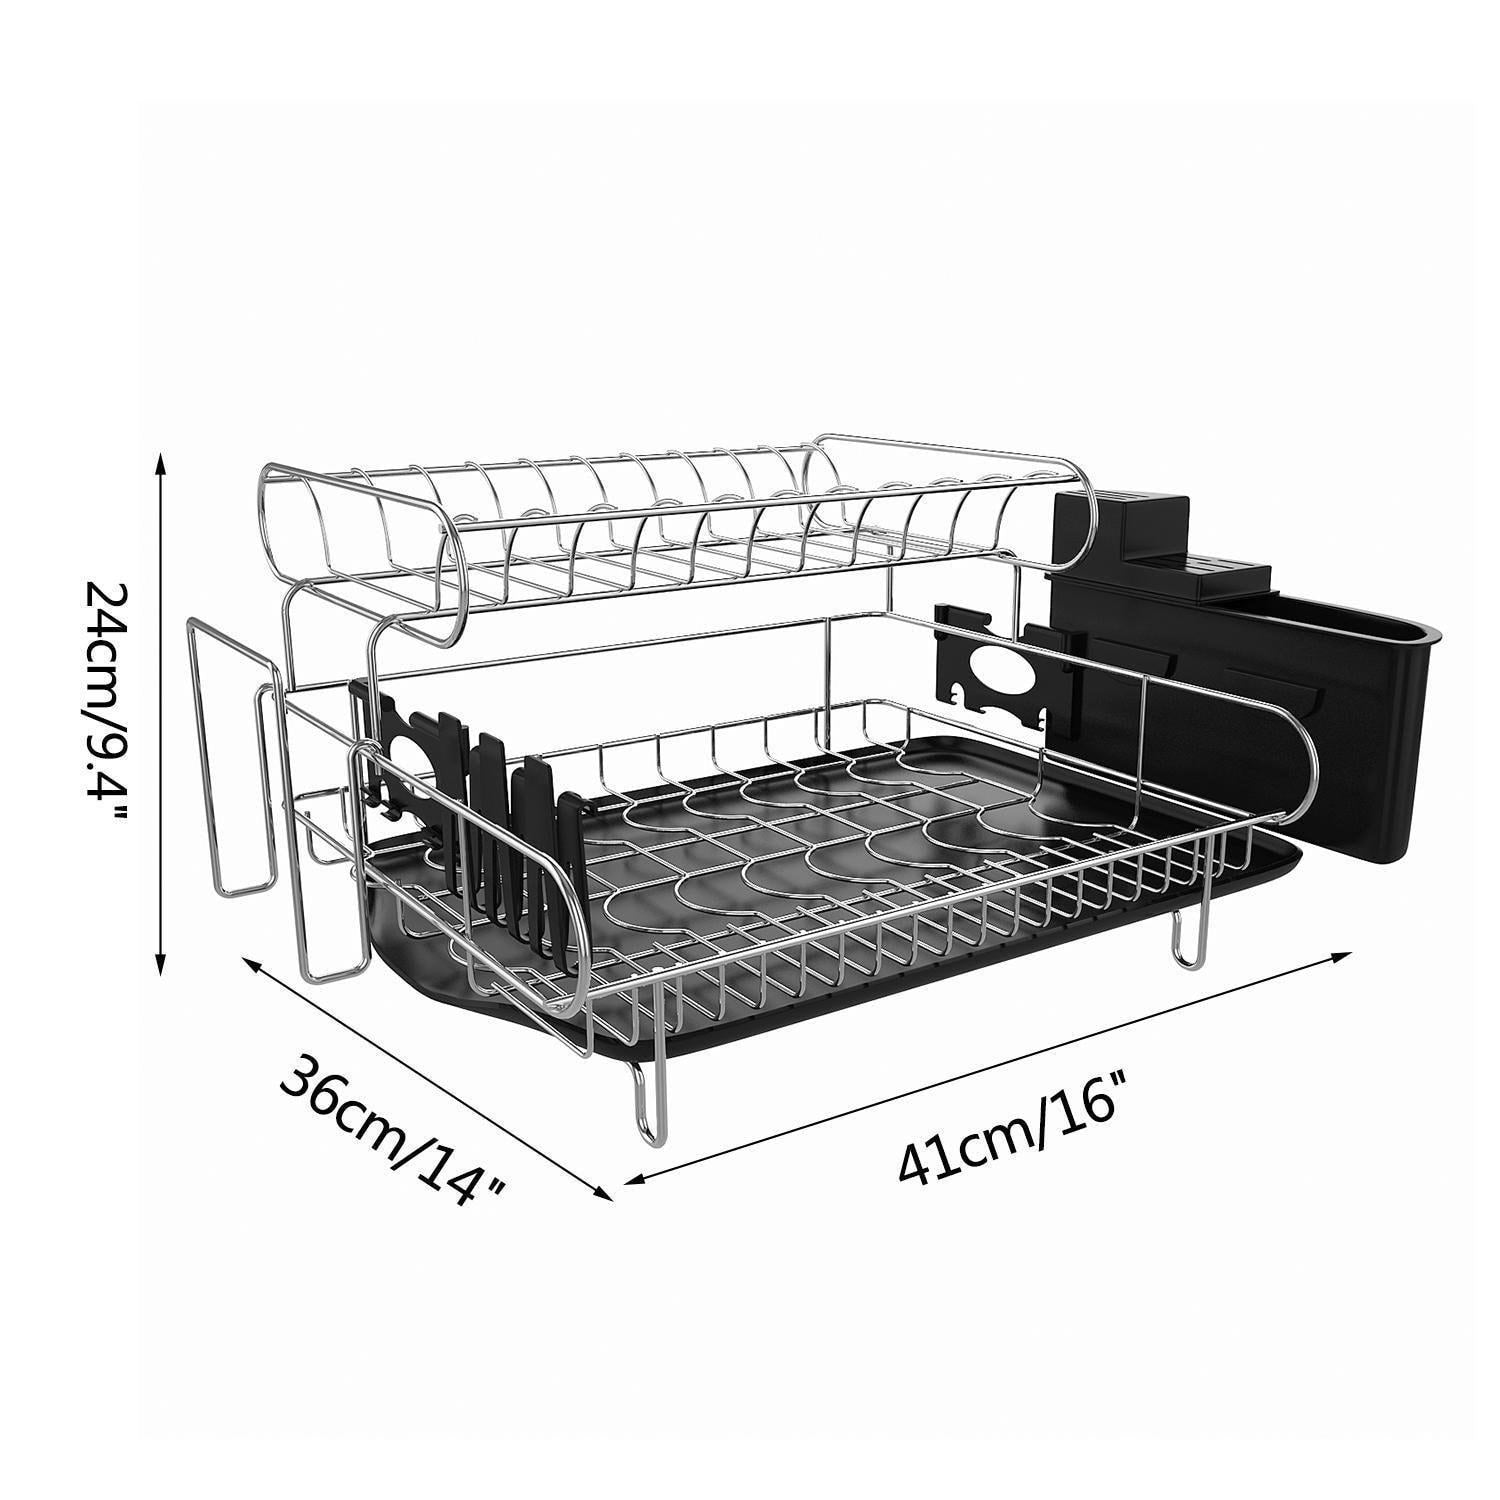 Professional Dish Drying Rack, 2 Tier 304 Stainless Steel Dish Rack with Drainboard, Microfiber Mat Kitchen Utensil Holder